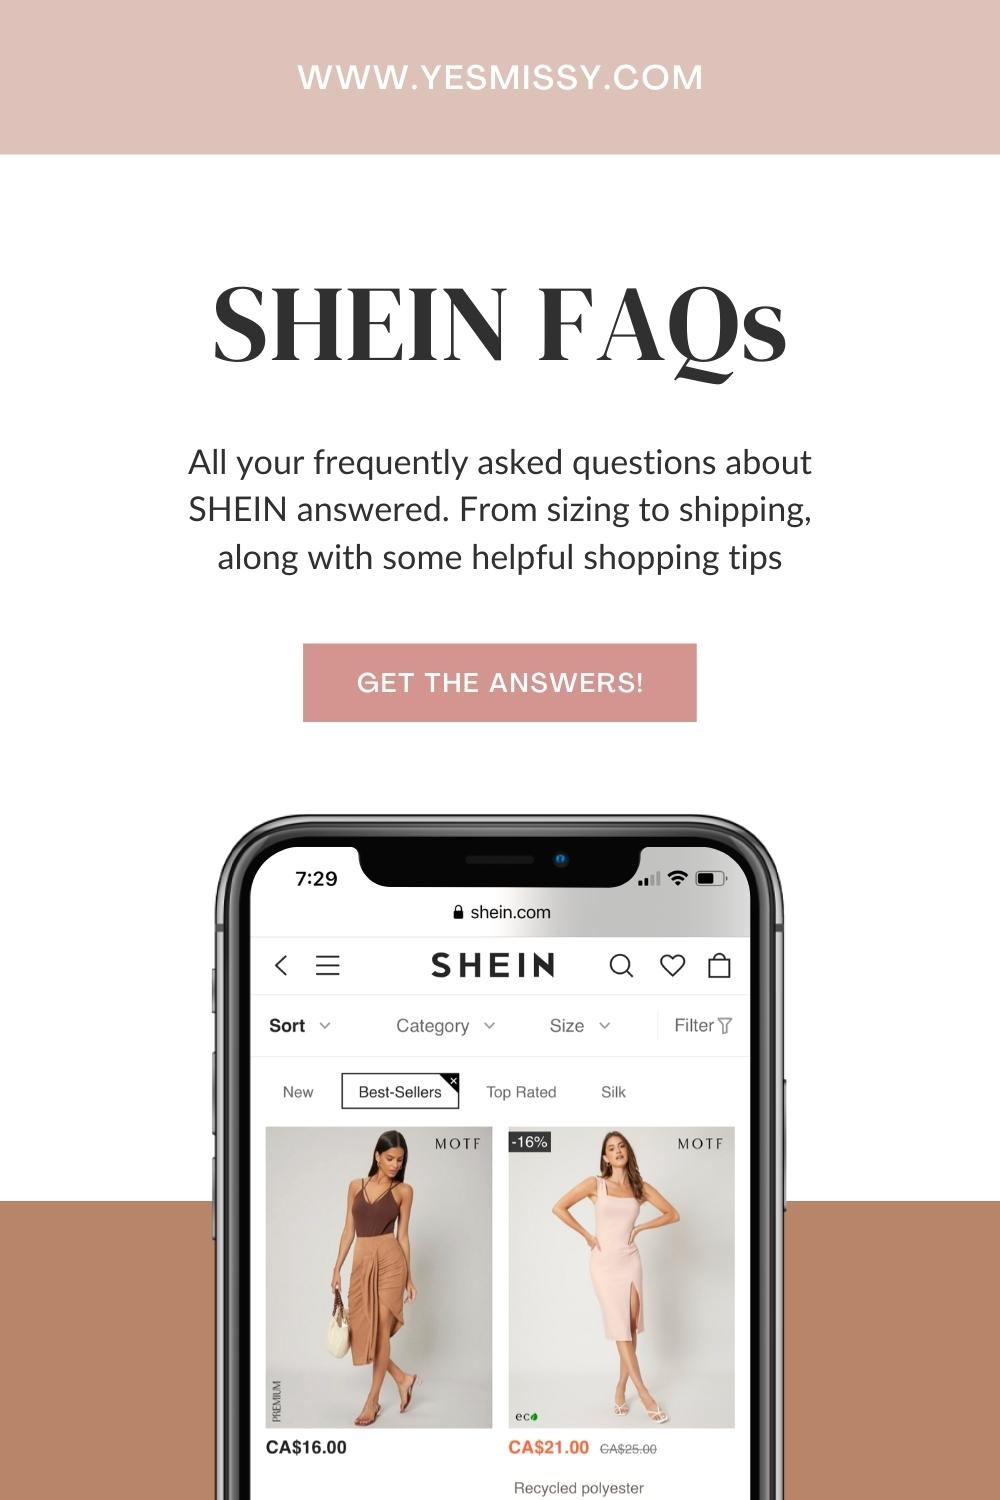 The answers to all your frequently asked questions about SHEIN - Is Shein legit? Is Shein good quality? Shein reviews and more...